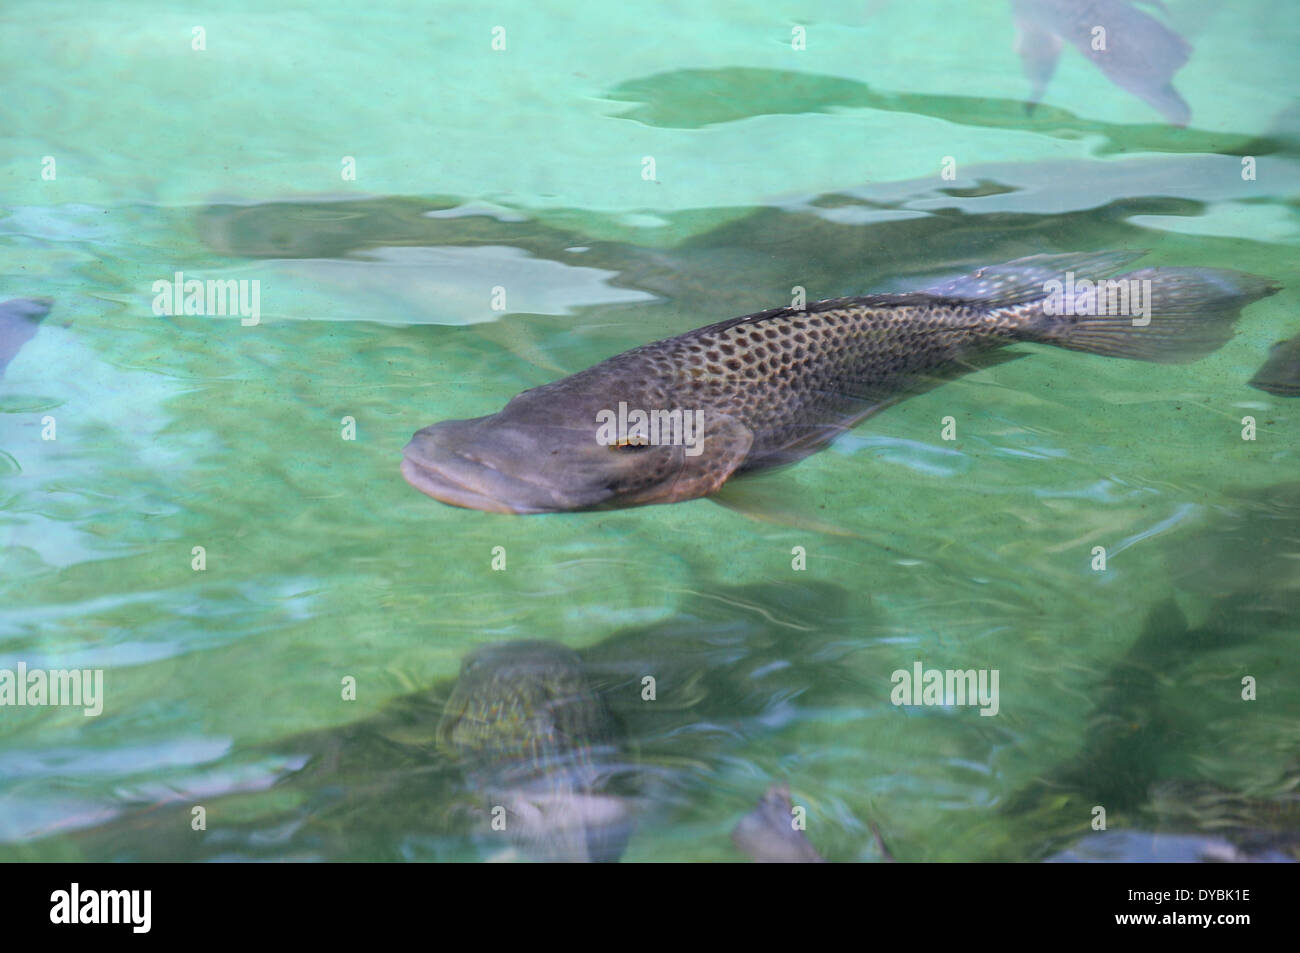 Adult mozambique tilapia oreochromis mossambicus oahu for Tilapia swimming